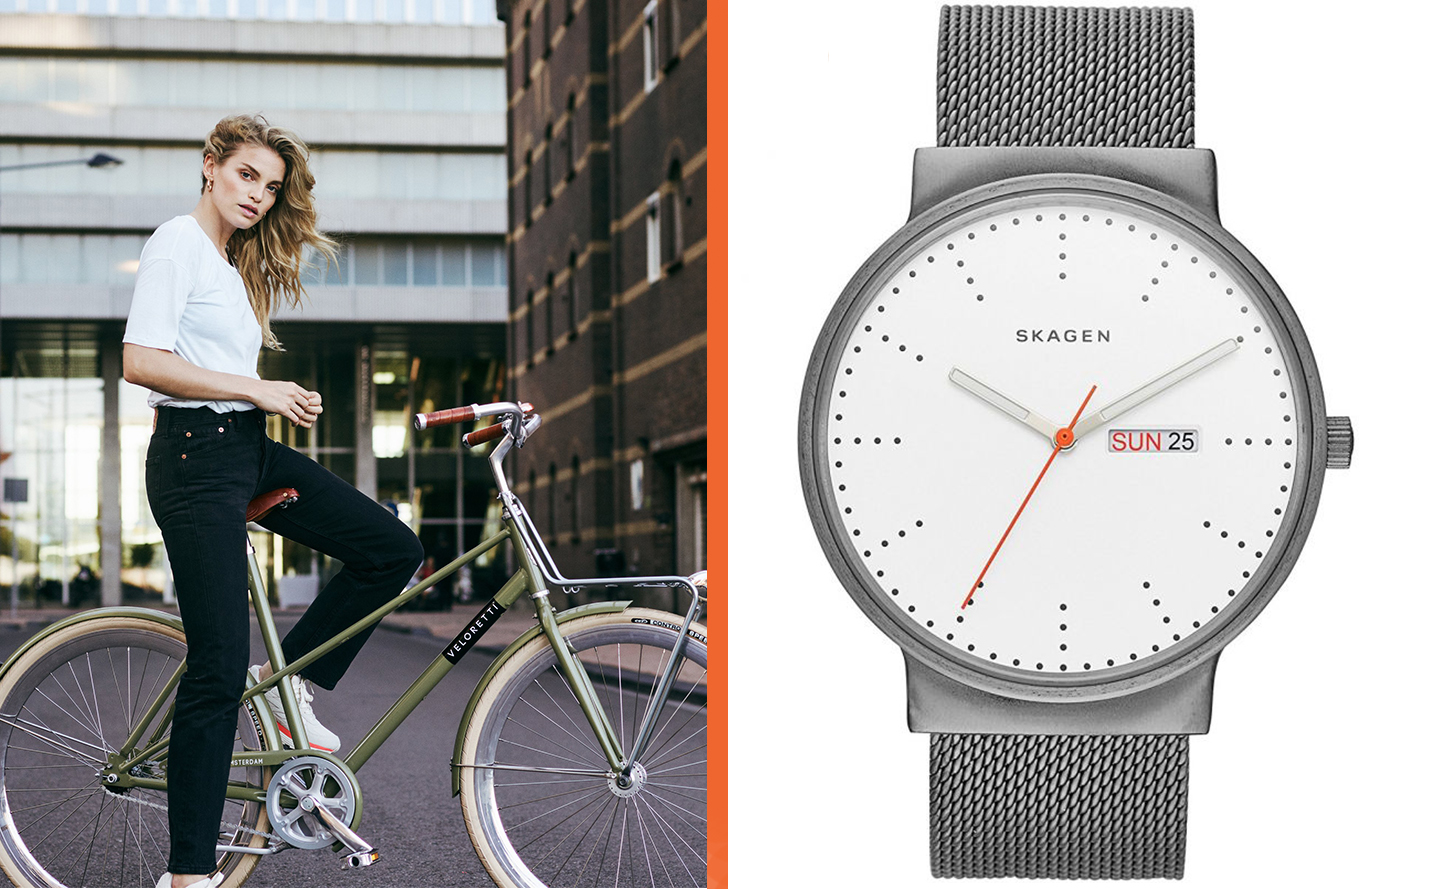 SKAGEN Watches